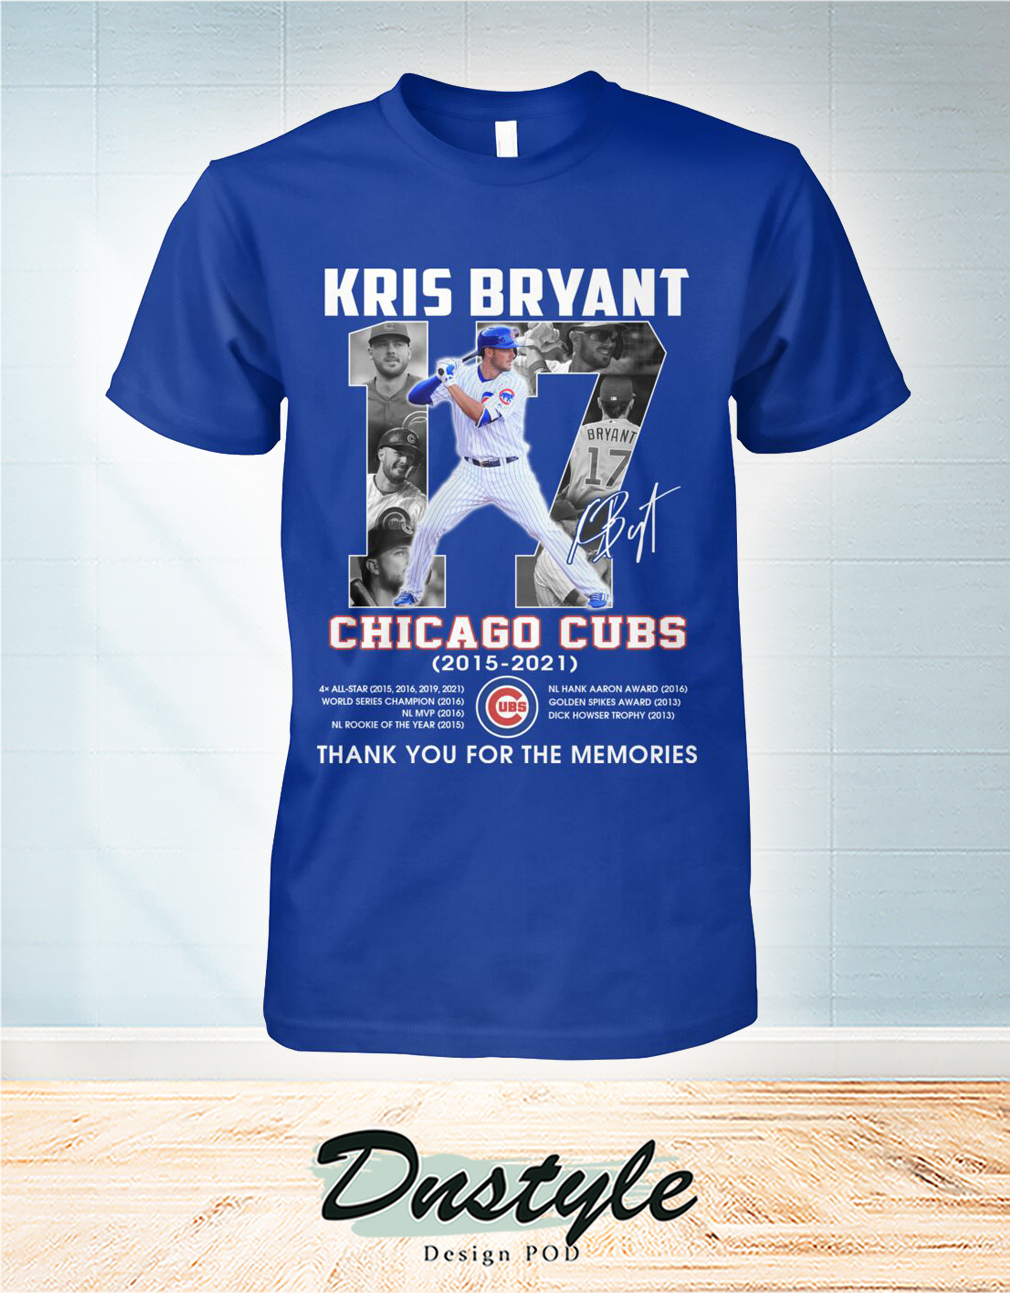 Chicago cubs Kris Bryant 17 signature thank you for the memories shirt